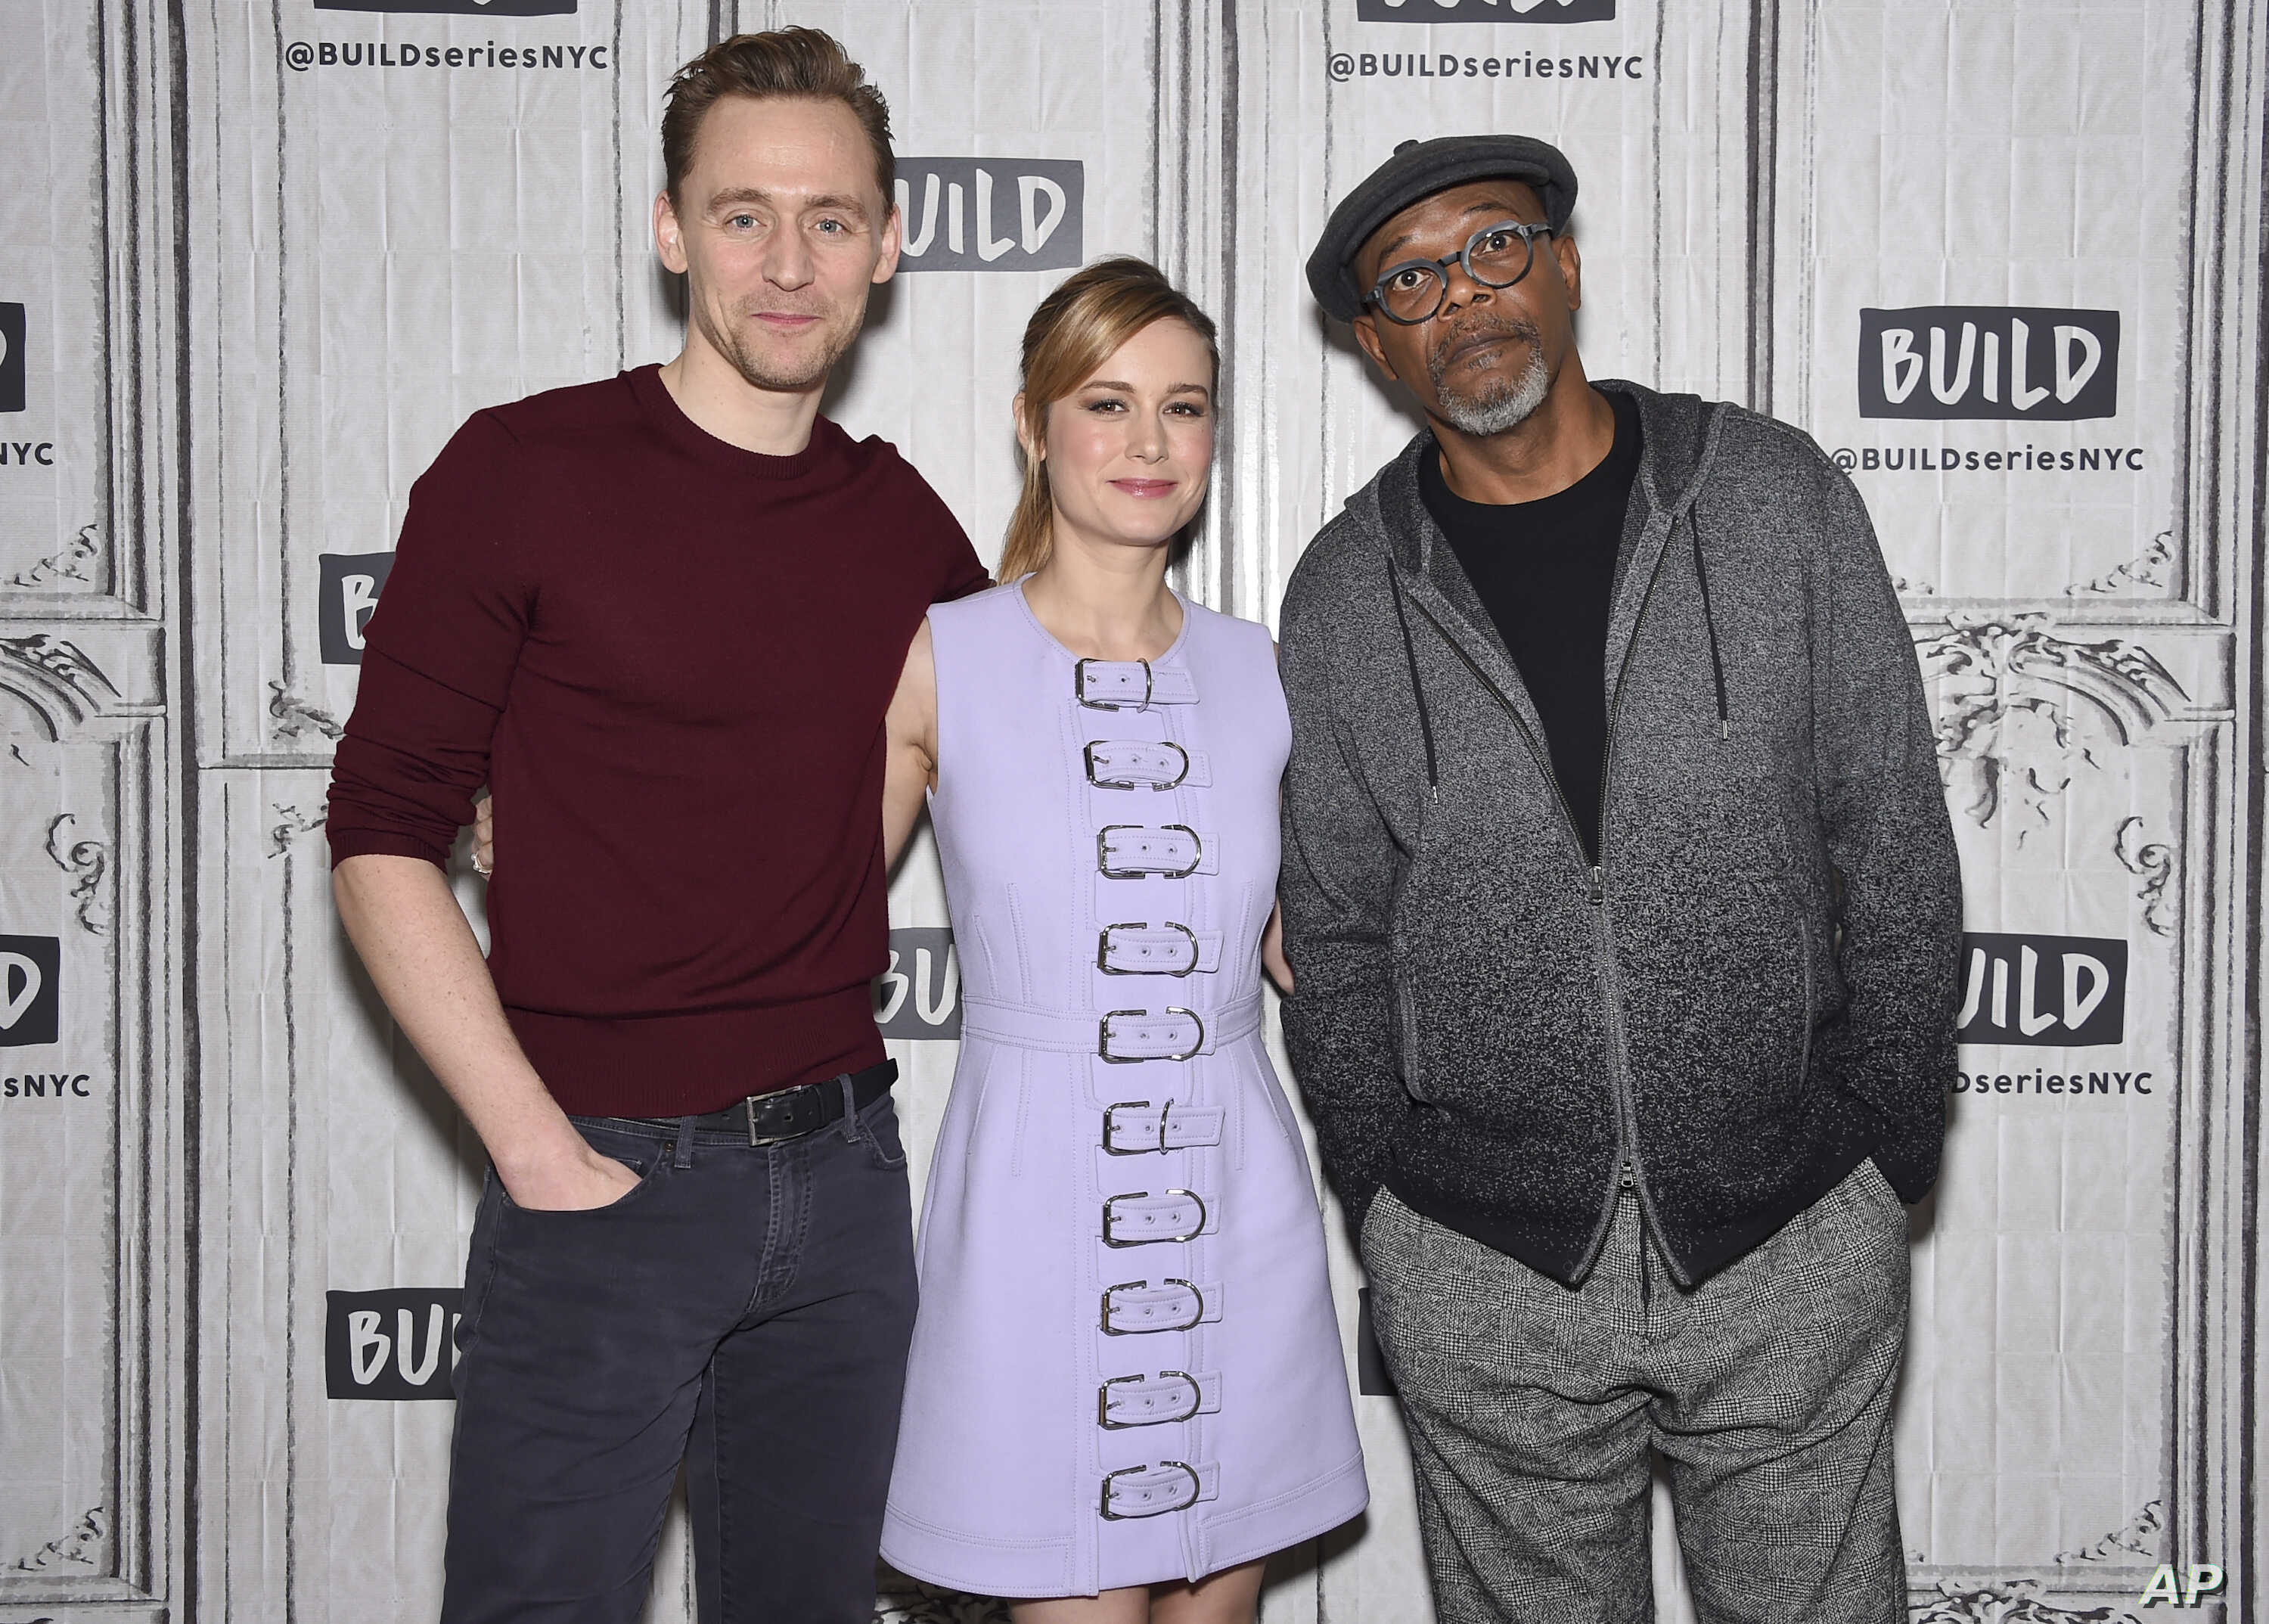 """Actors Tom Hiddleston, left, Brie Larson and Samuel L. Jackson participate in the BUILD Speaker Series to discuss the film """"Kong: Skull Island"""" at AOL Studios, March 6, 2017, in New York."""